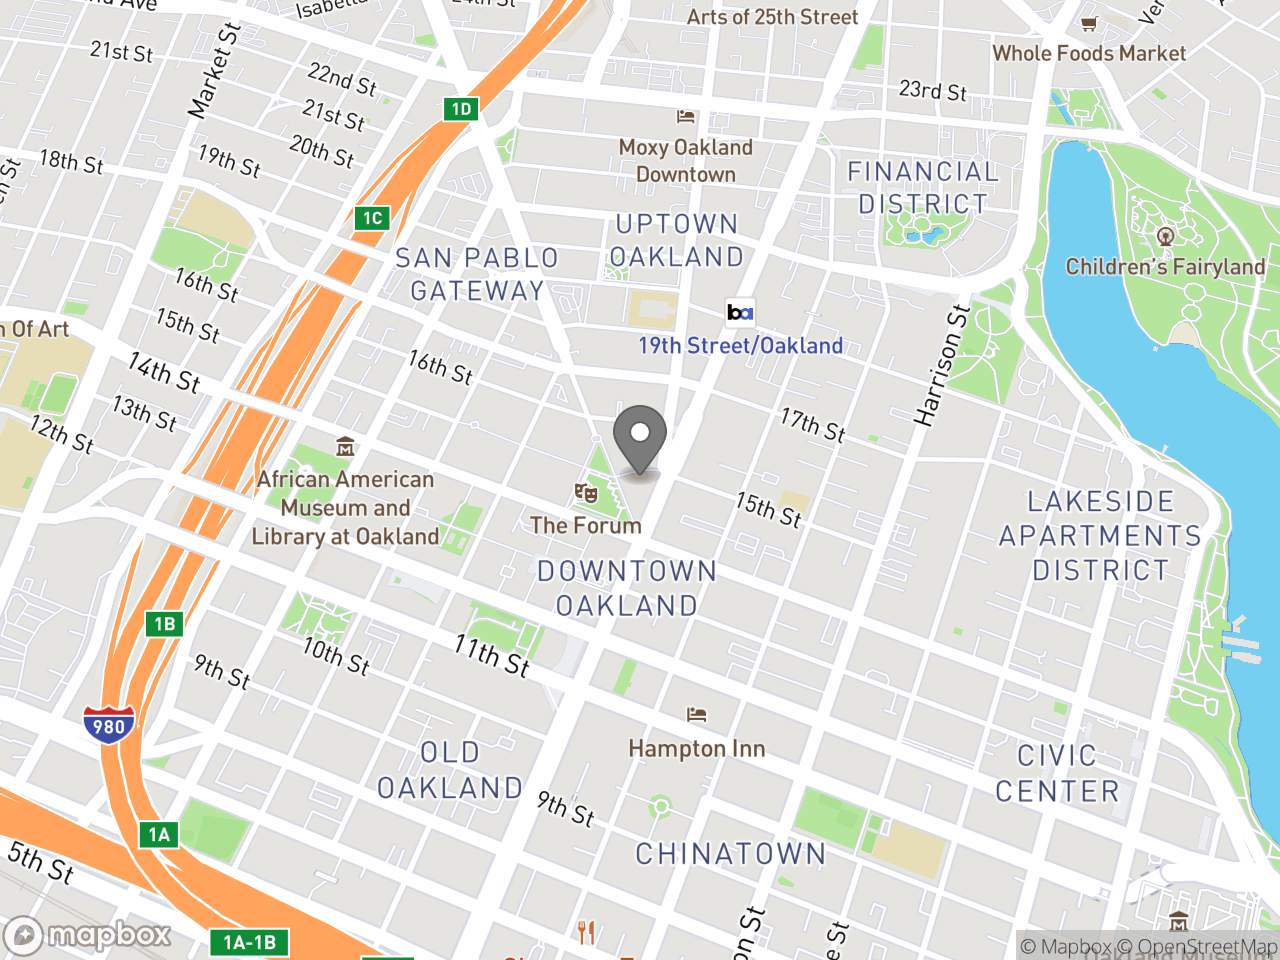 Map image for Human Services, located at 150 Frank H. Ogawa Plaza in Oakland, CA 94612